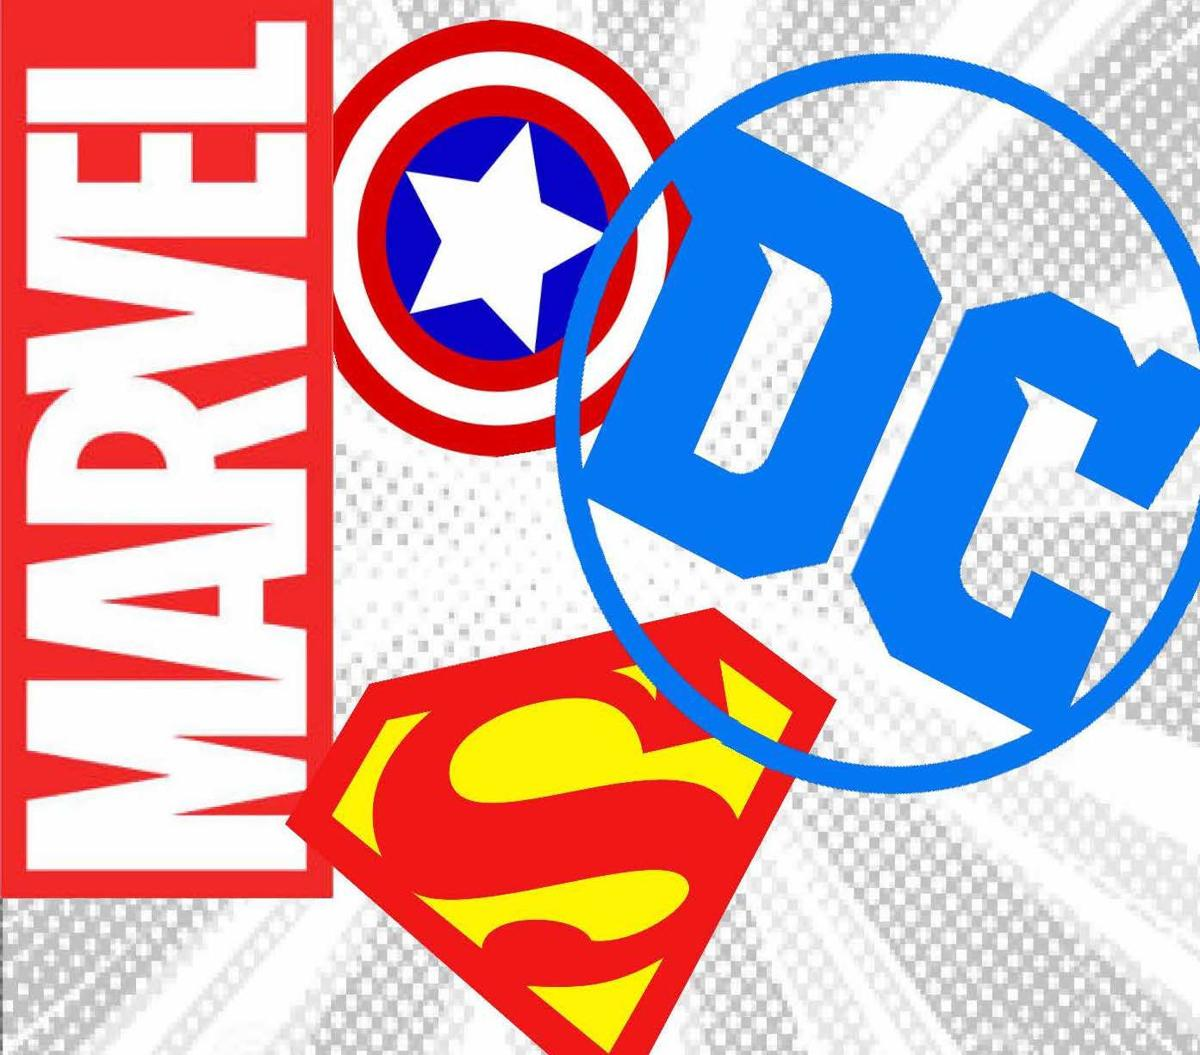 Dc and marvel clipart graphic transparent library Battle of the Comics: DC versus Marvel | Opinion | easternprogress.com graphic transparent library